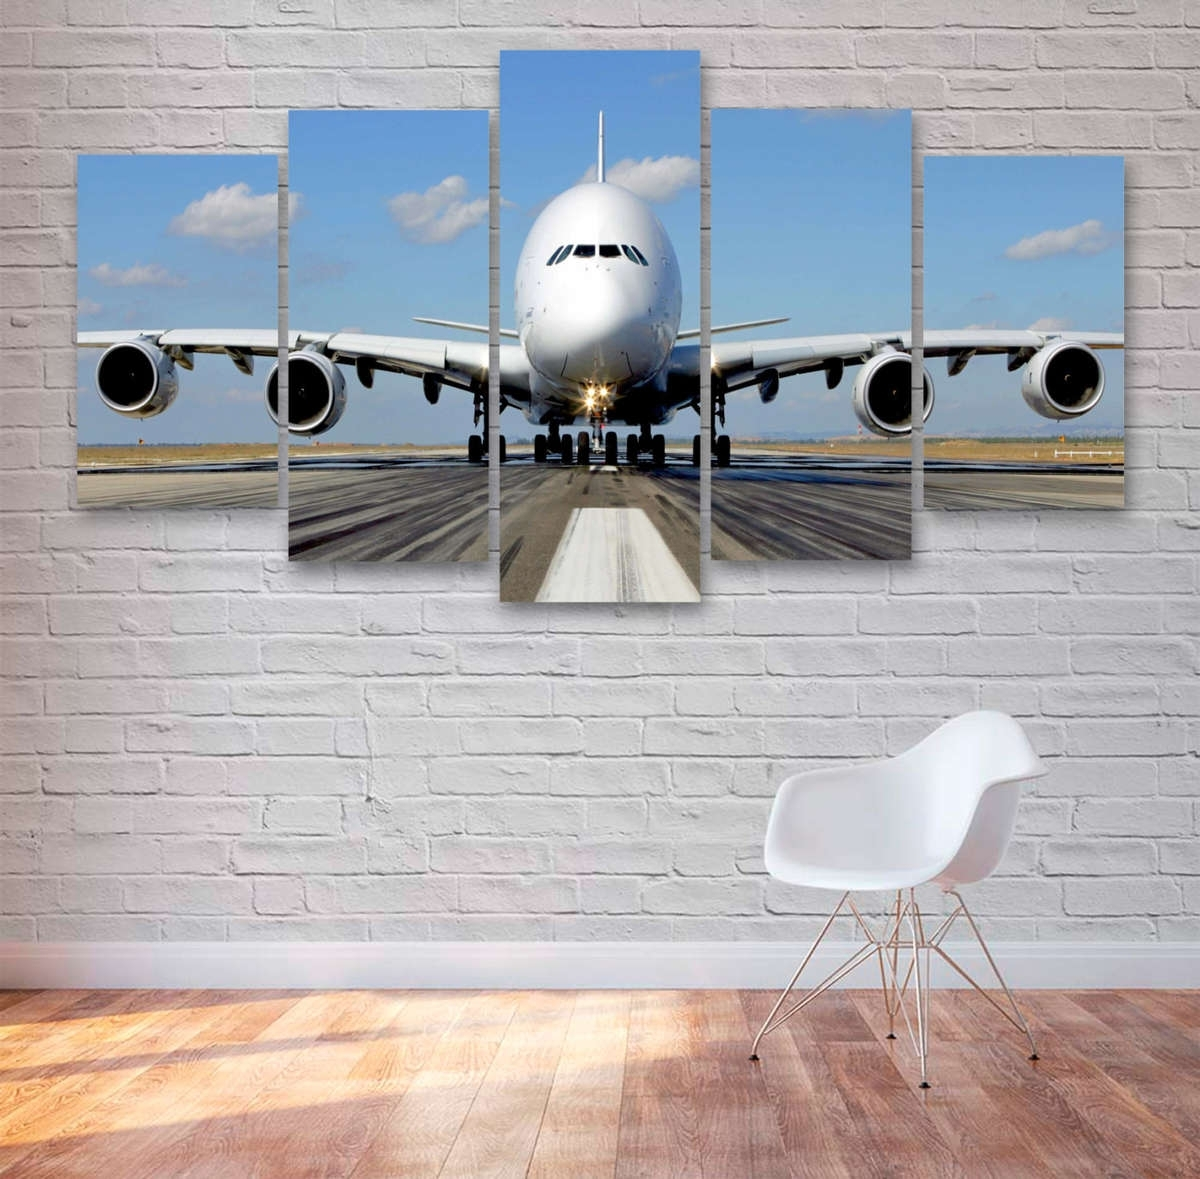 Passenger Airplane Multi Panel Canvas Wall Art – Mighty Paintings For Best And Newest Aviation Wall Art (Gallery 4 of 20)